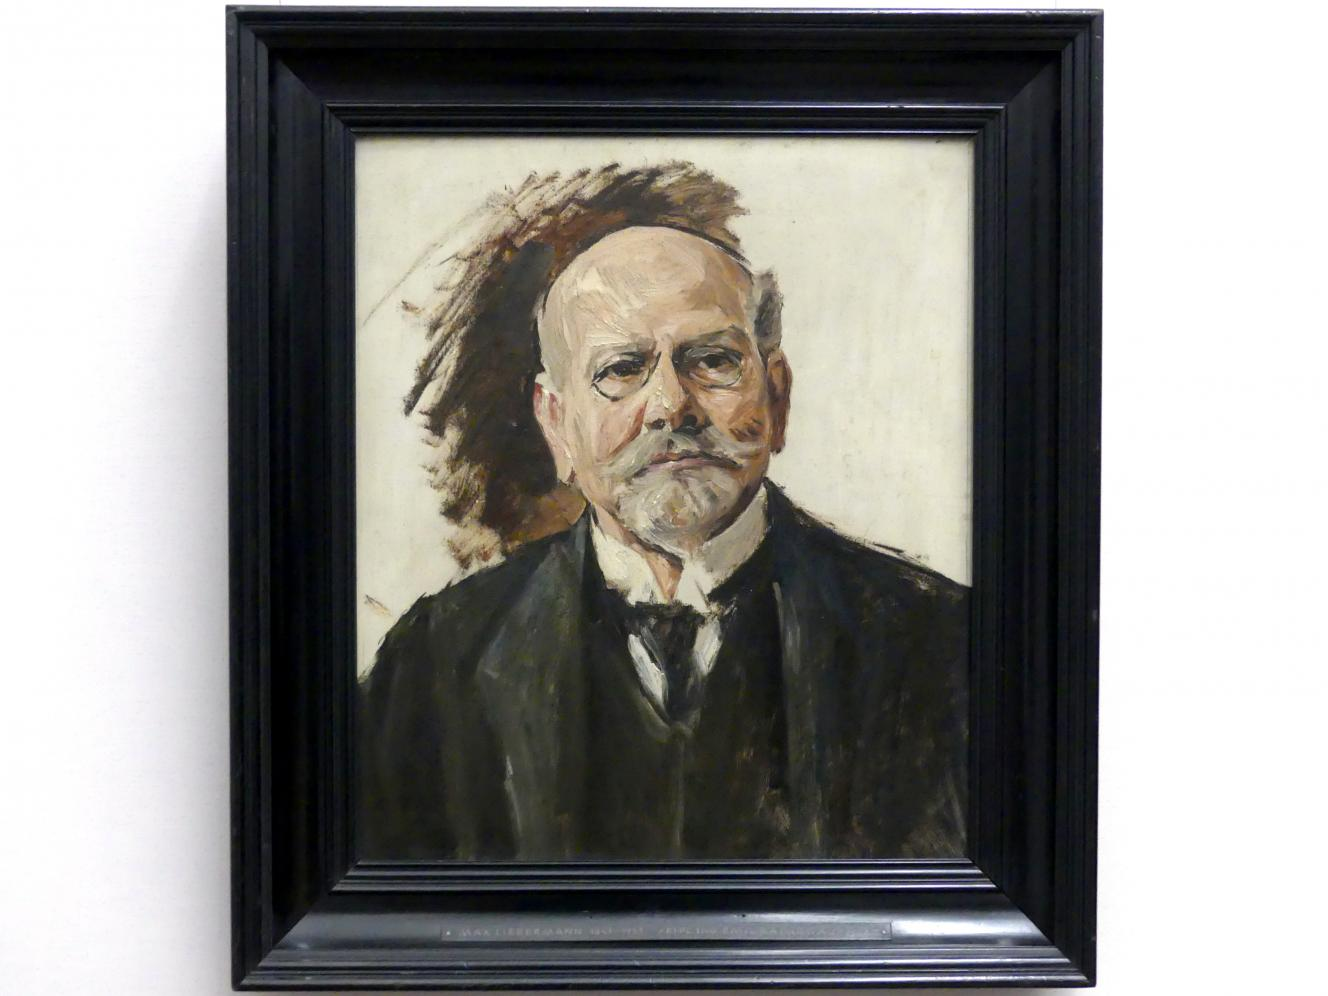 Max Liebermann: Emil Rathenau, 1908